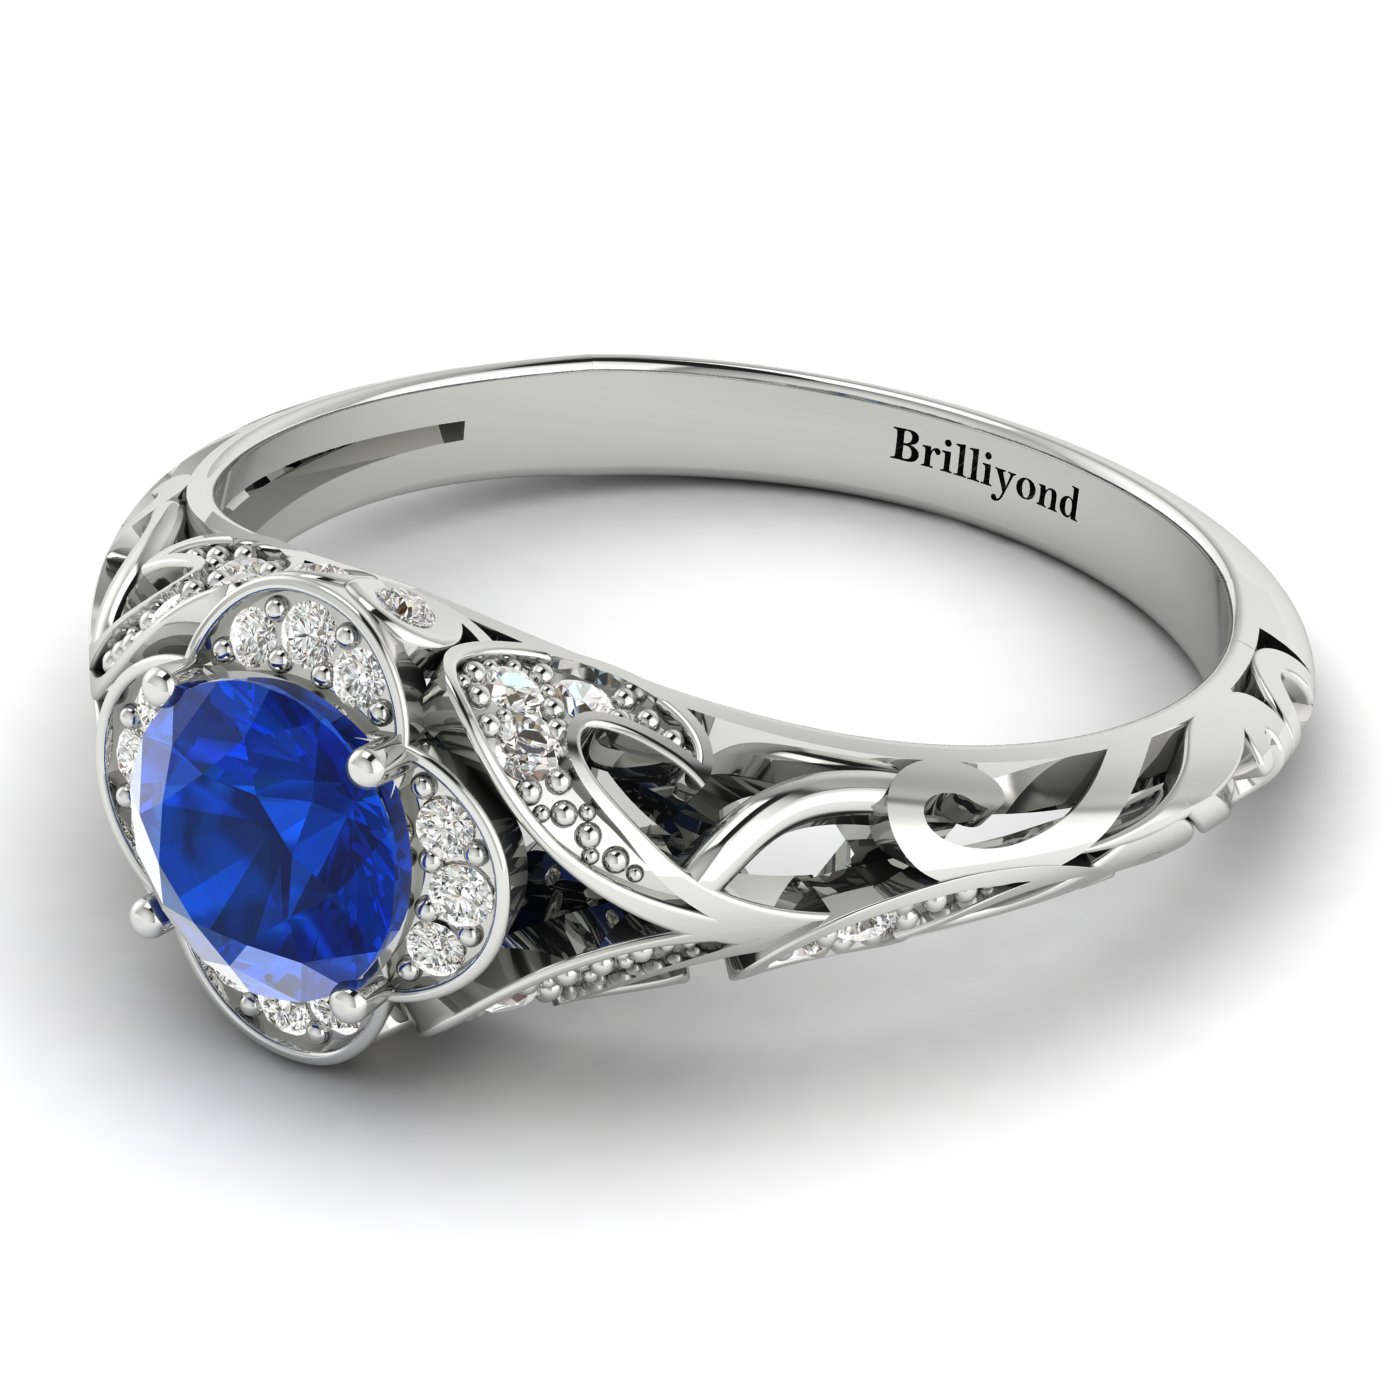 5mm Blue Ceylon Sapphire on 18k White Gold with Accent Diamonds